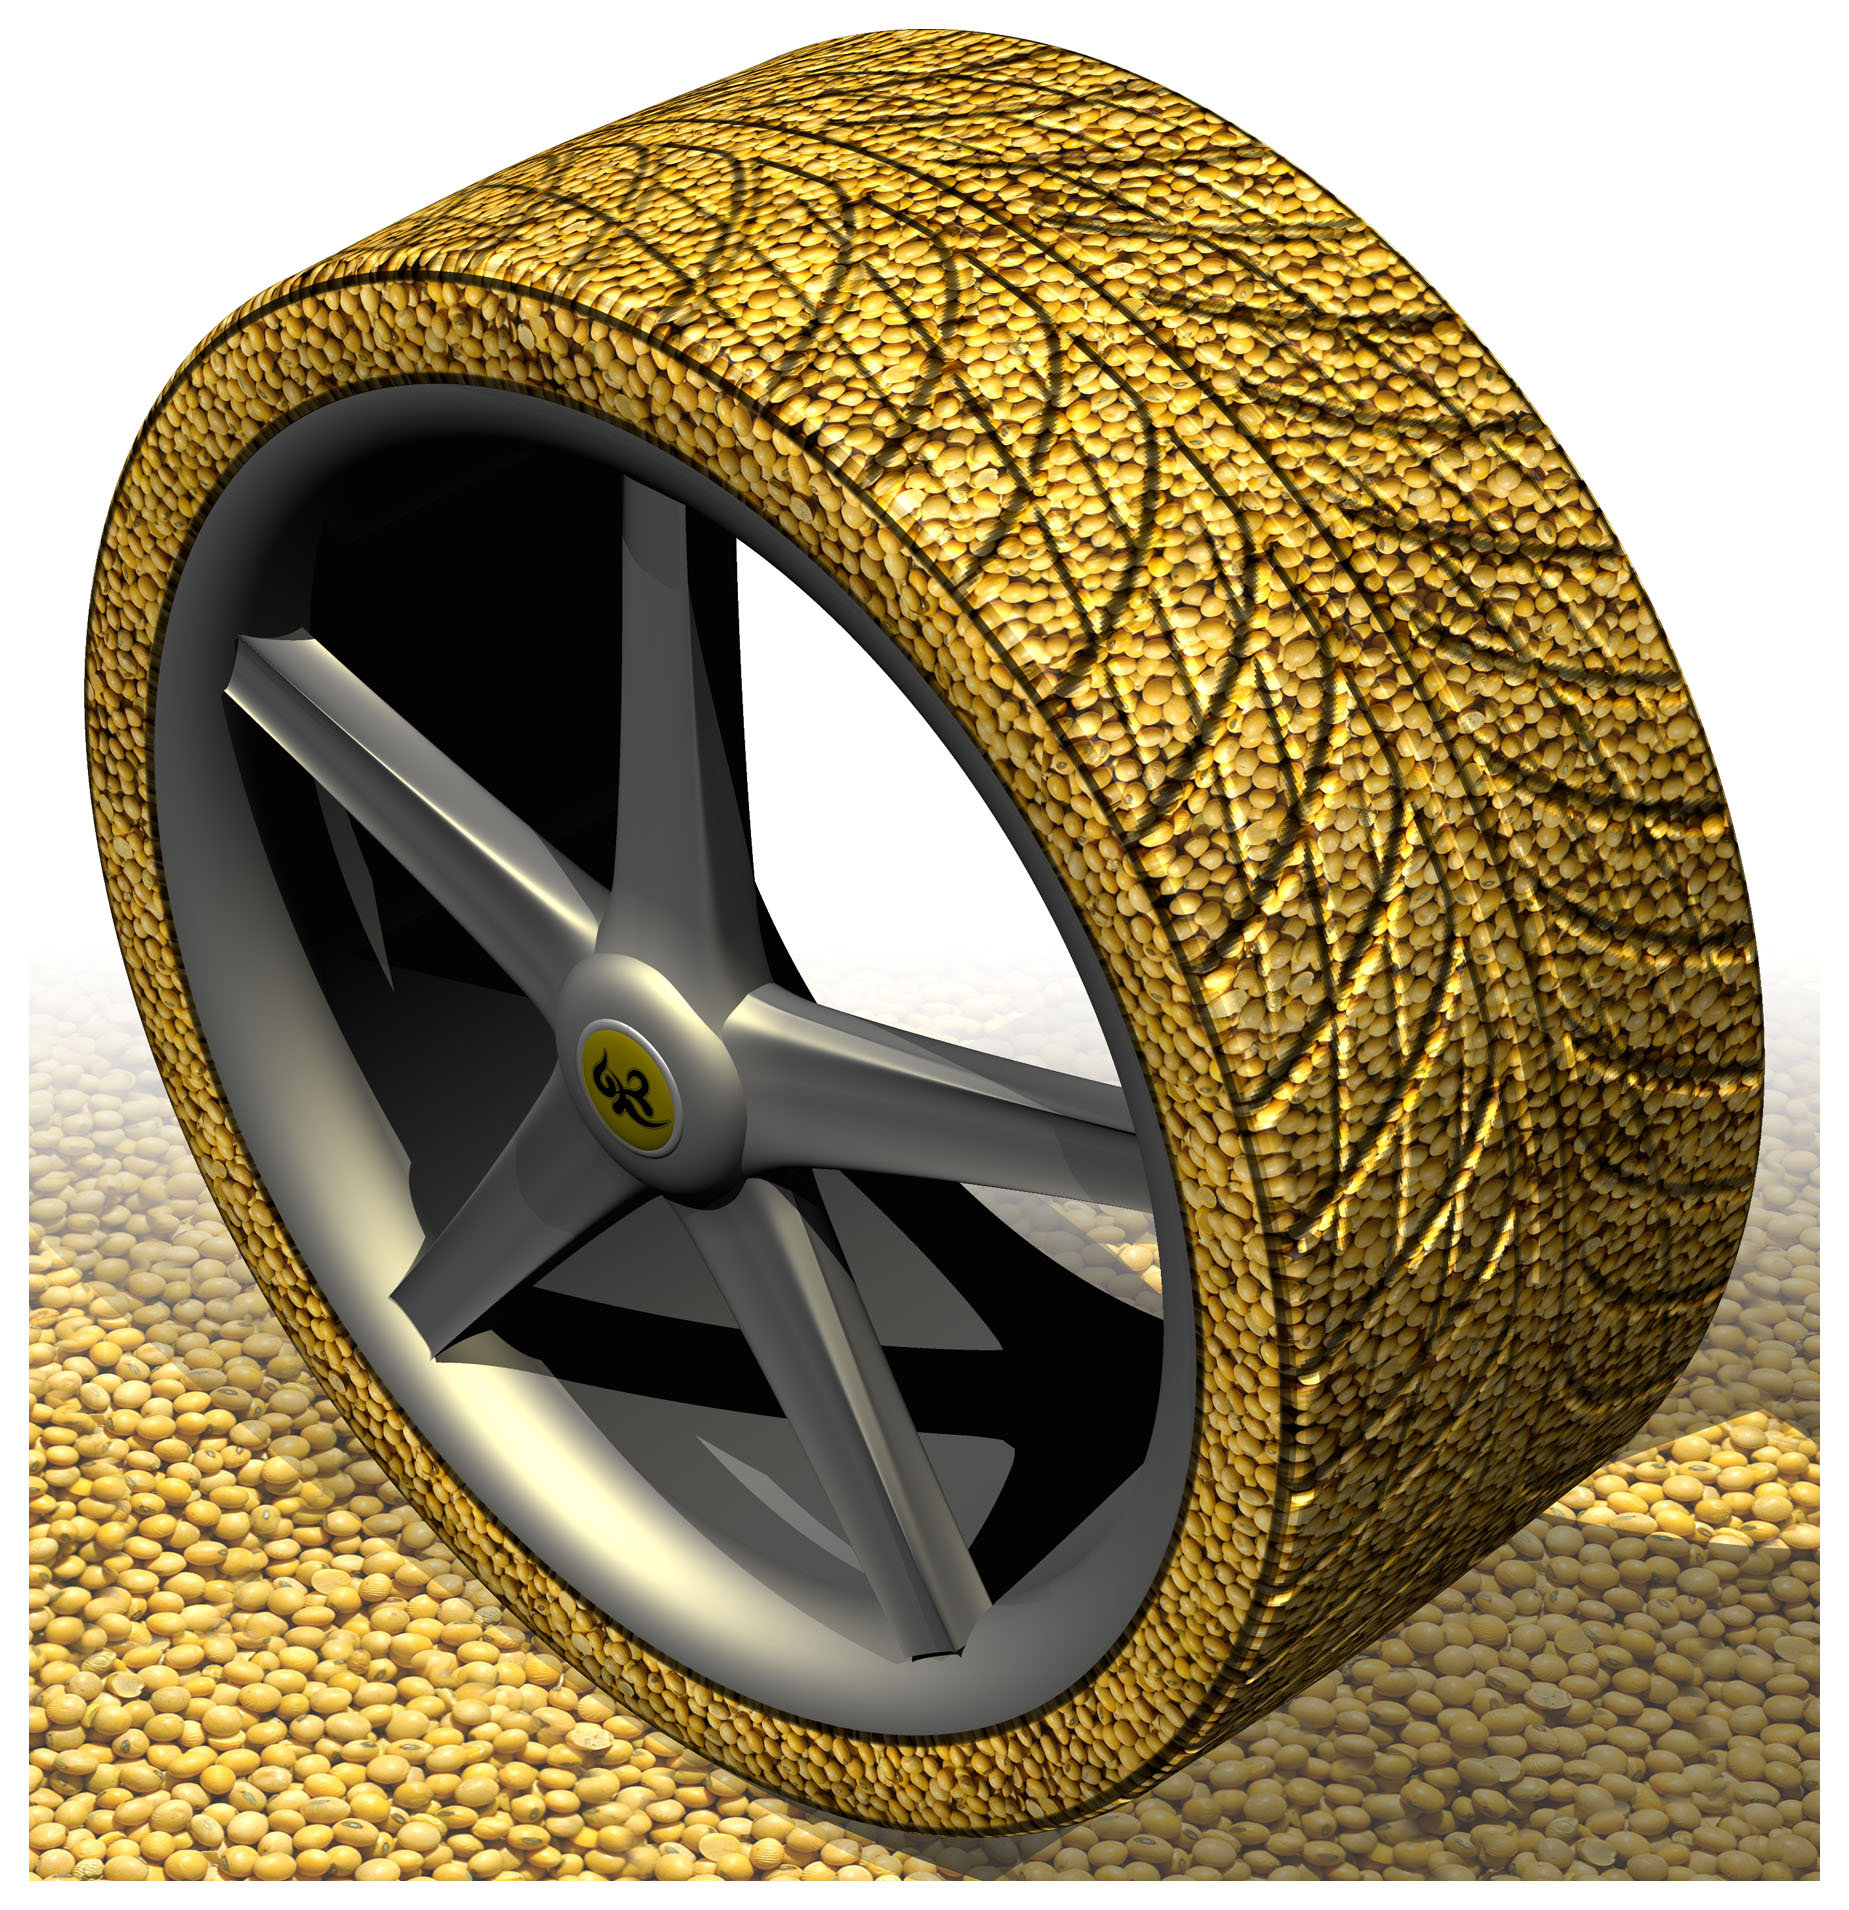 Goodyear Tyres Goodyear To Enhance Tyre Performance With Use Of Soybean Oil Based